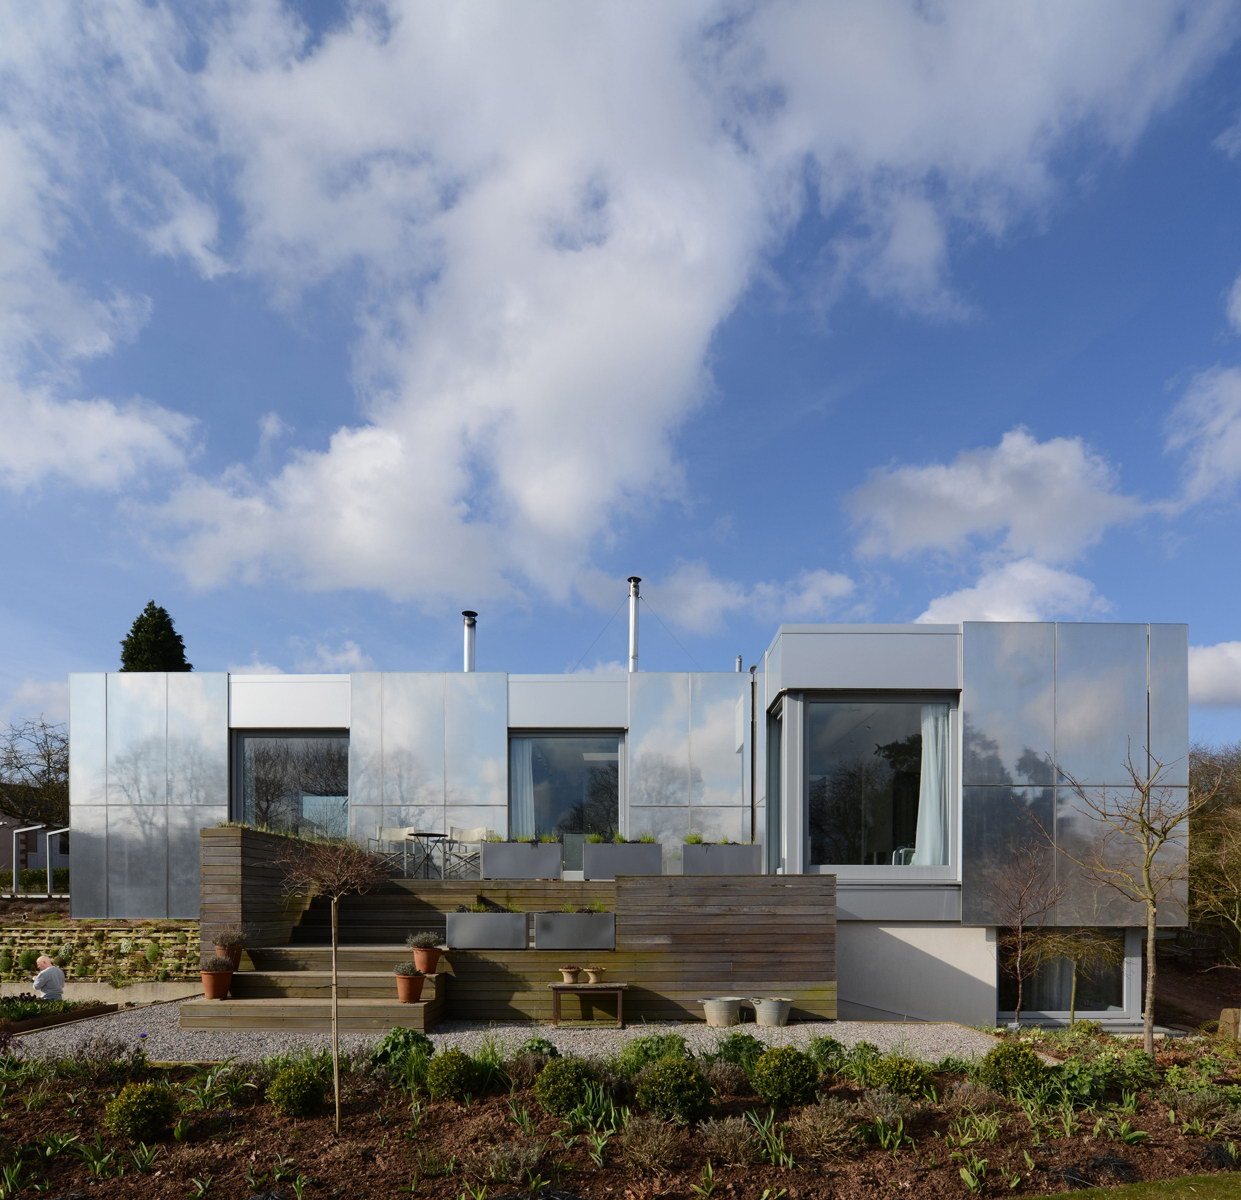 Green Orchard | Zero Carbon House by Paul Archer Design